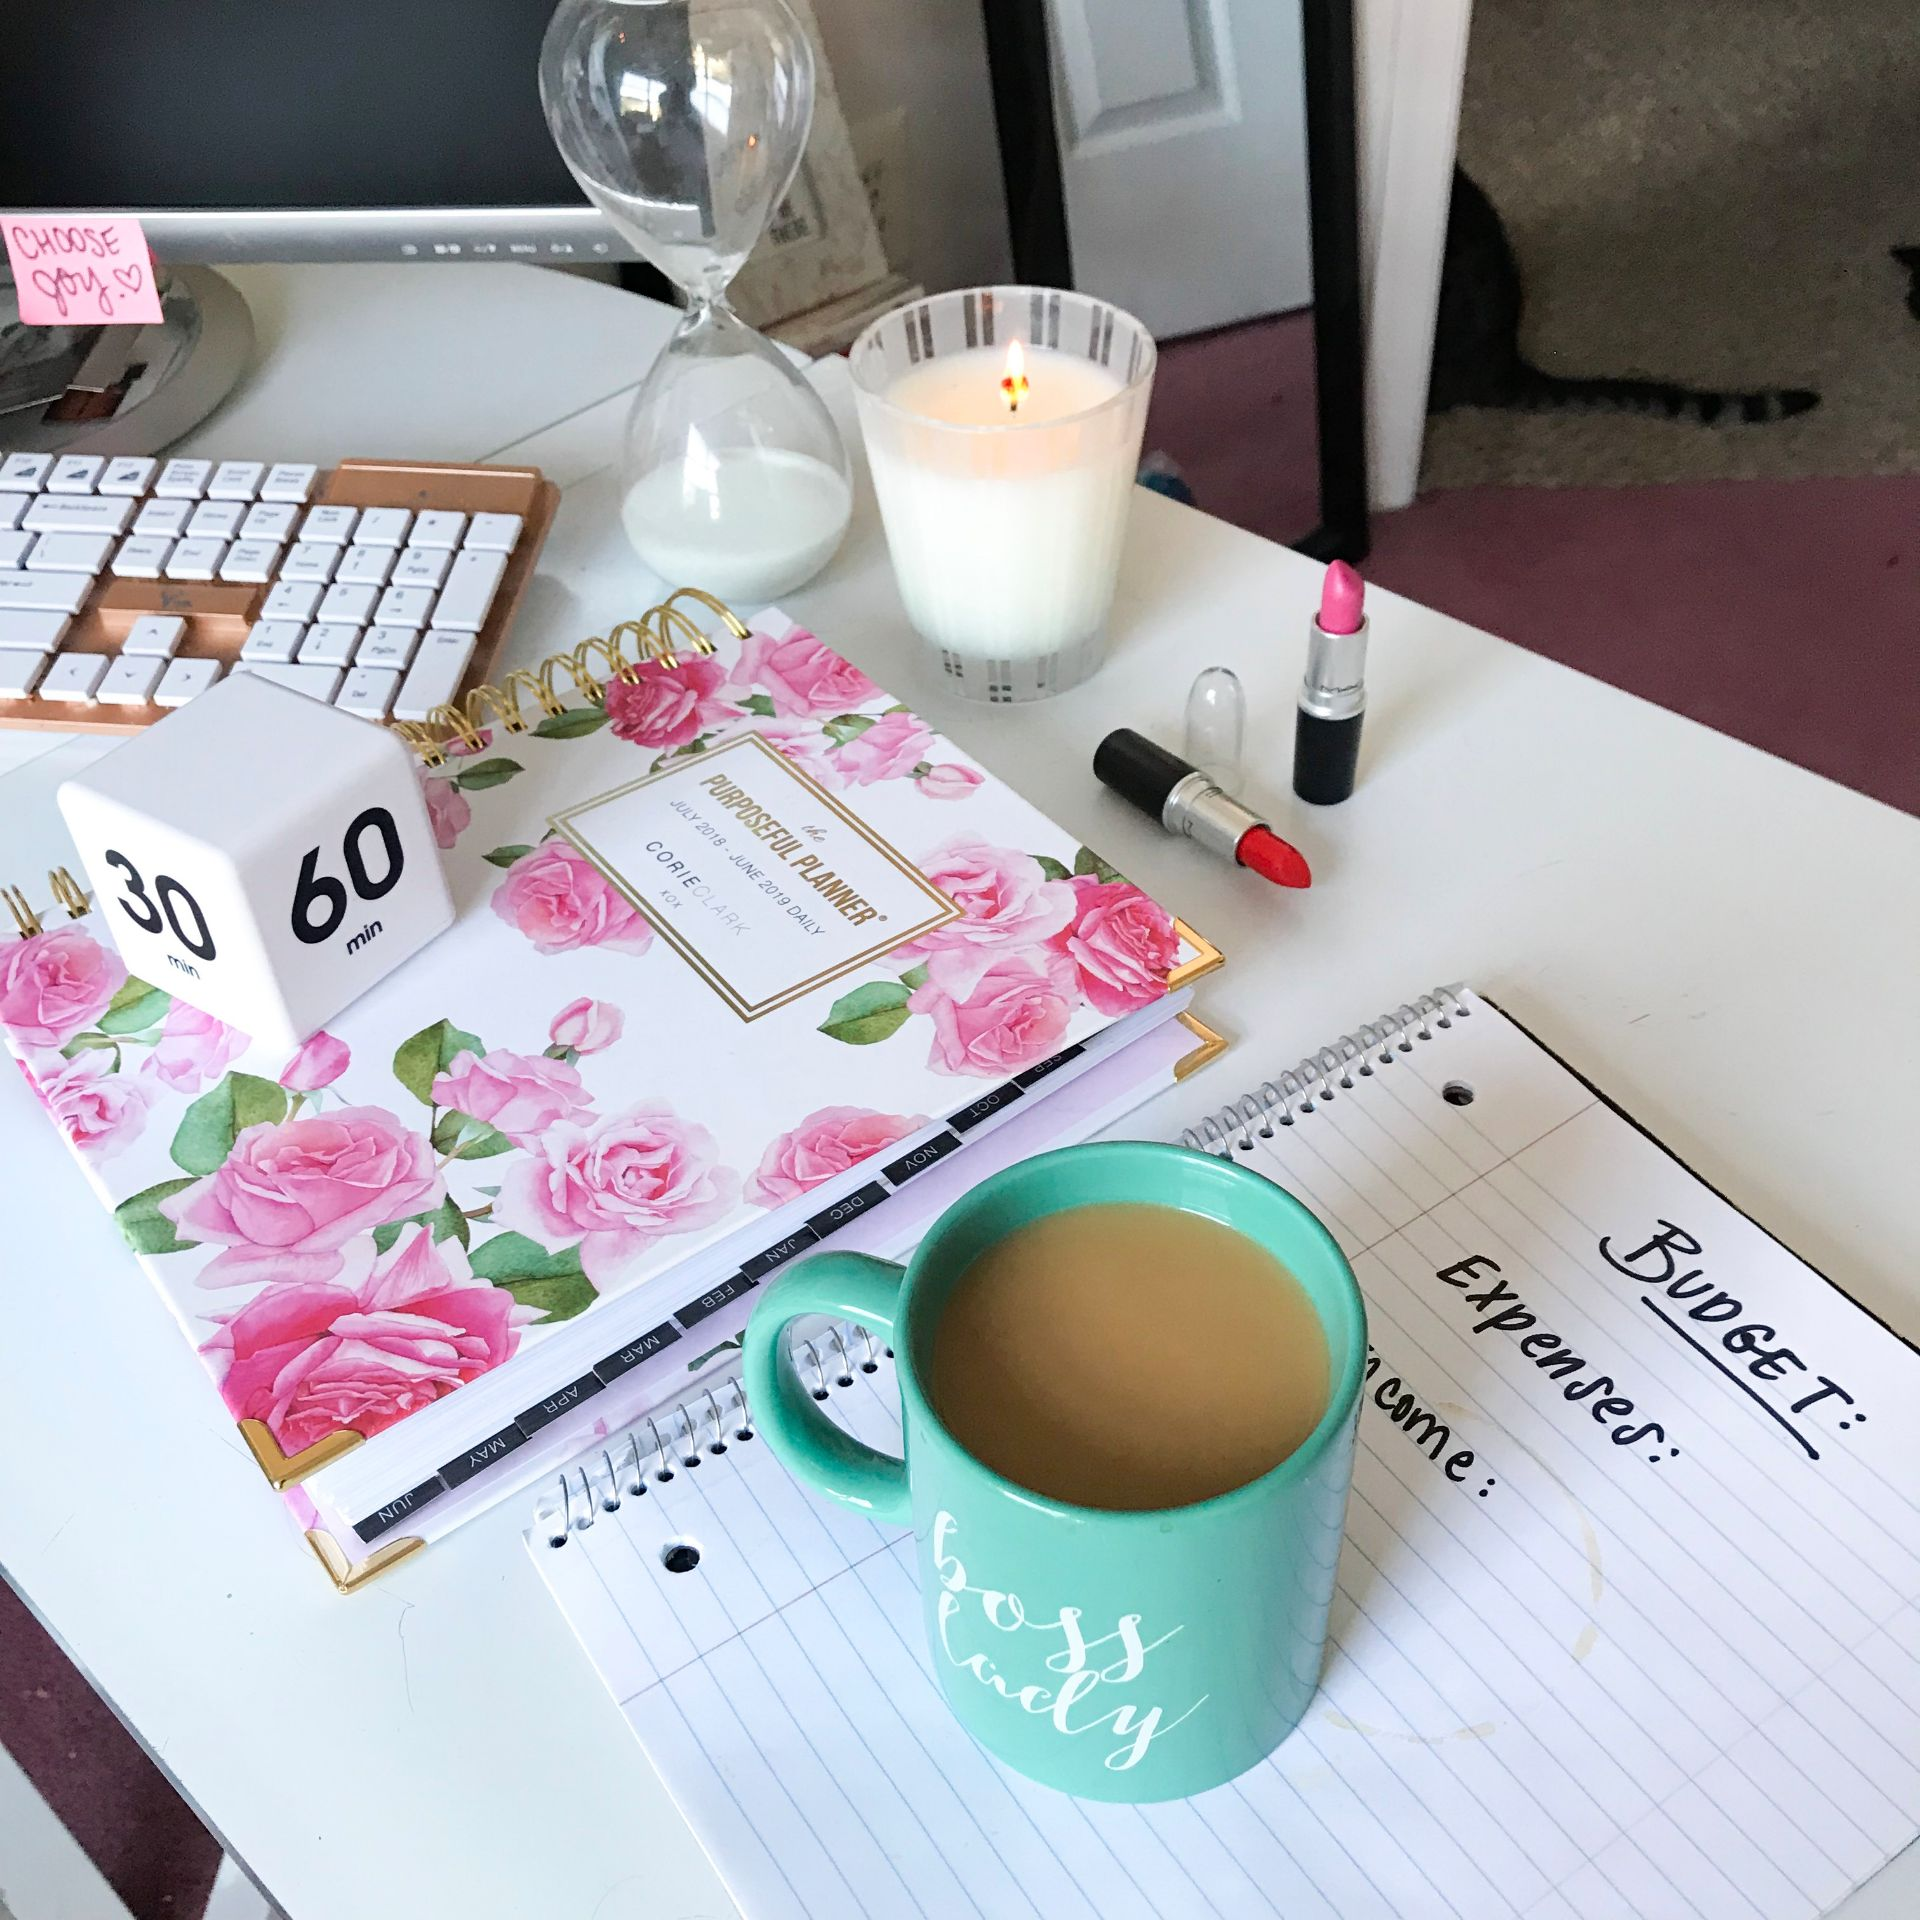 Master your Big Girl Budget with these Short Term Budgeting Tips from Philadelphia Lifestyle blogger, Erica of Coming Up Roses! BOOKMARK FOR LATER!